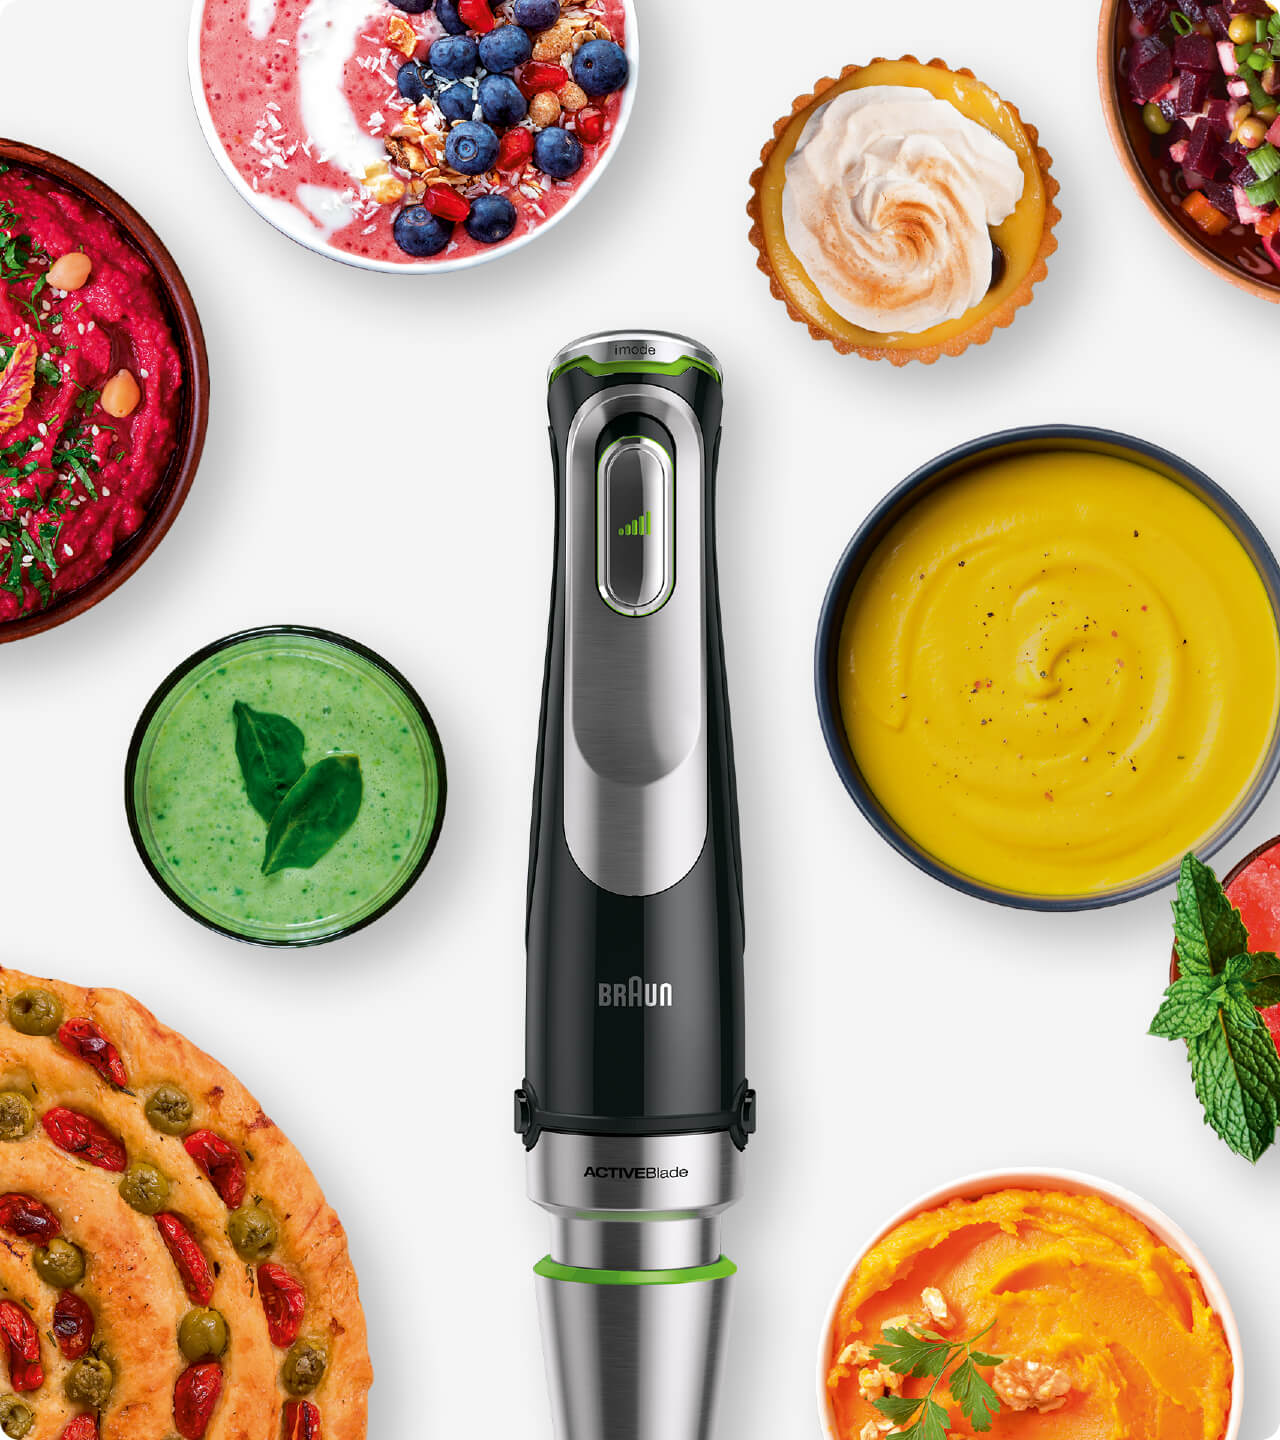 Braun MultiQuick 9X Hand blender pushes the boundaries of your culinary skills.